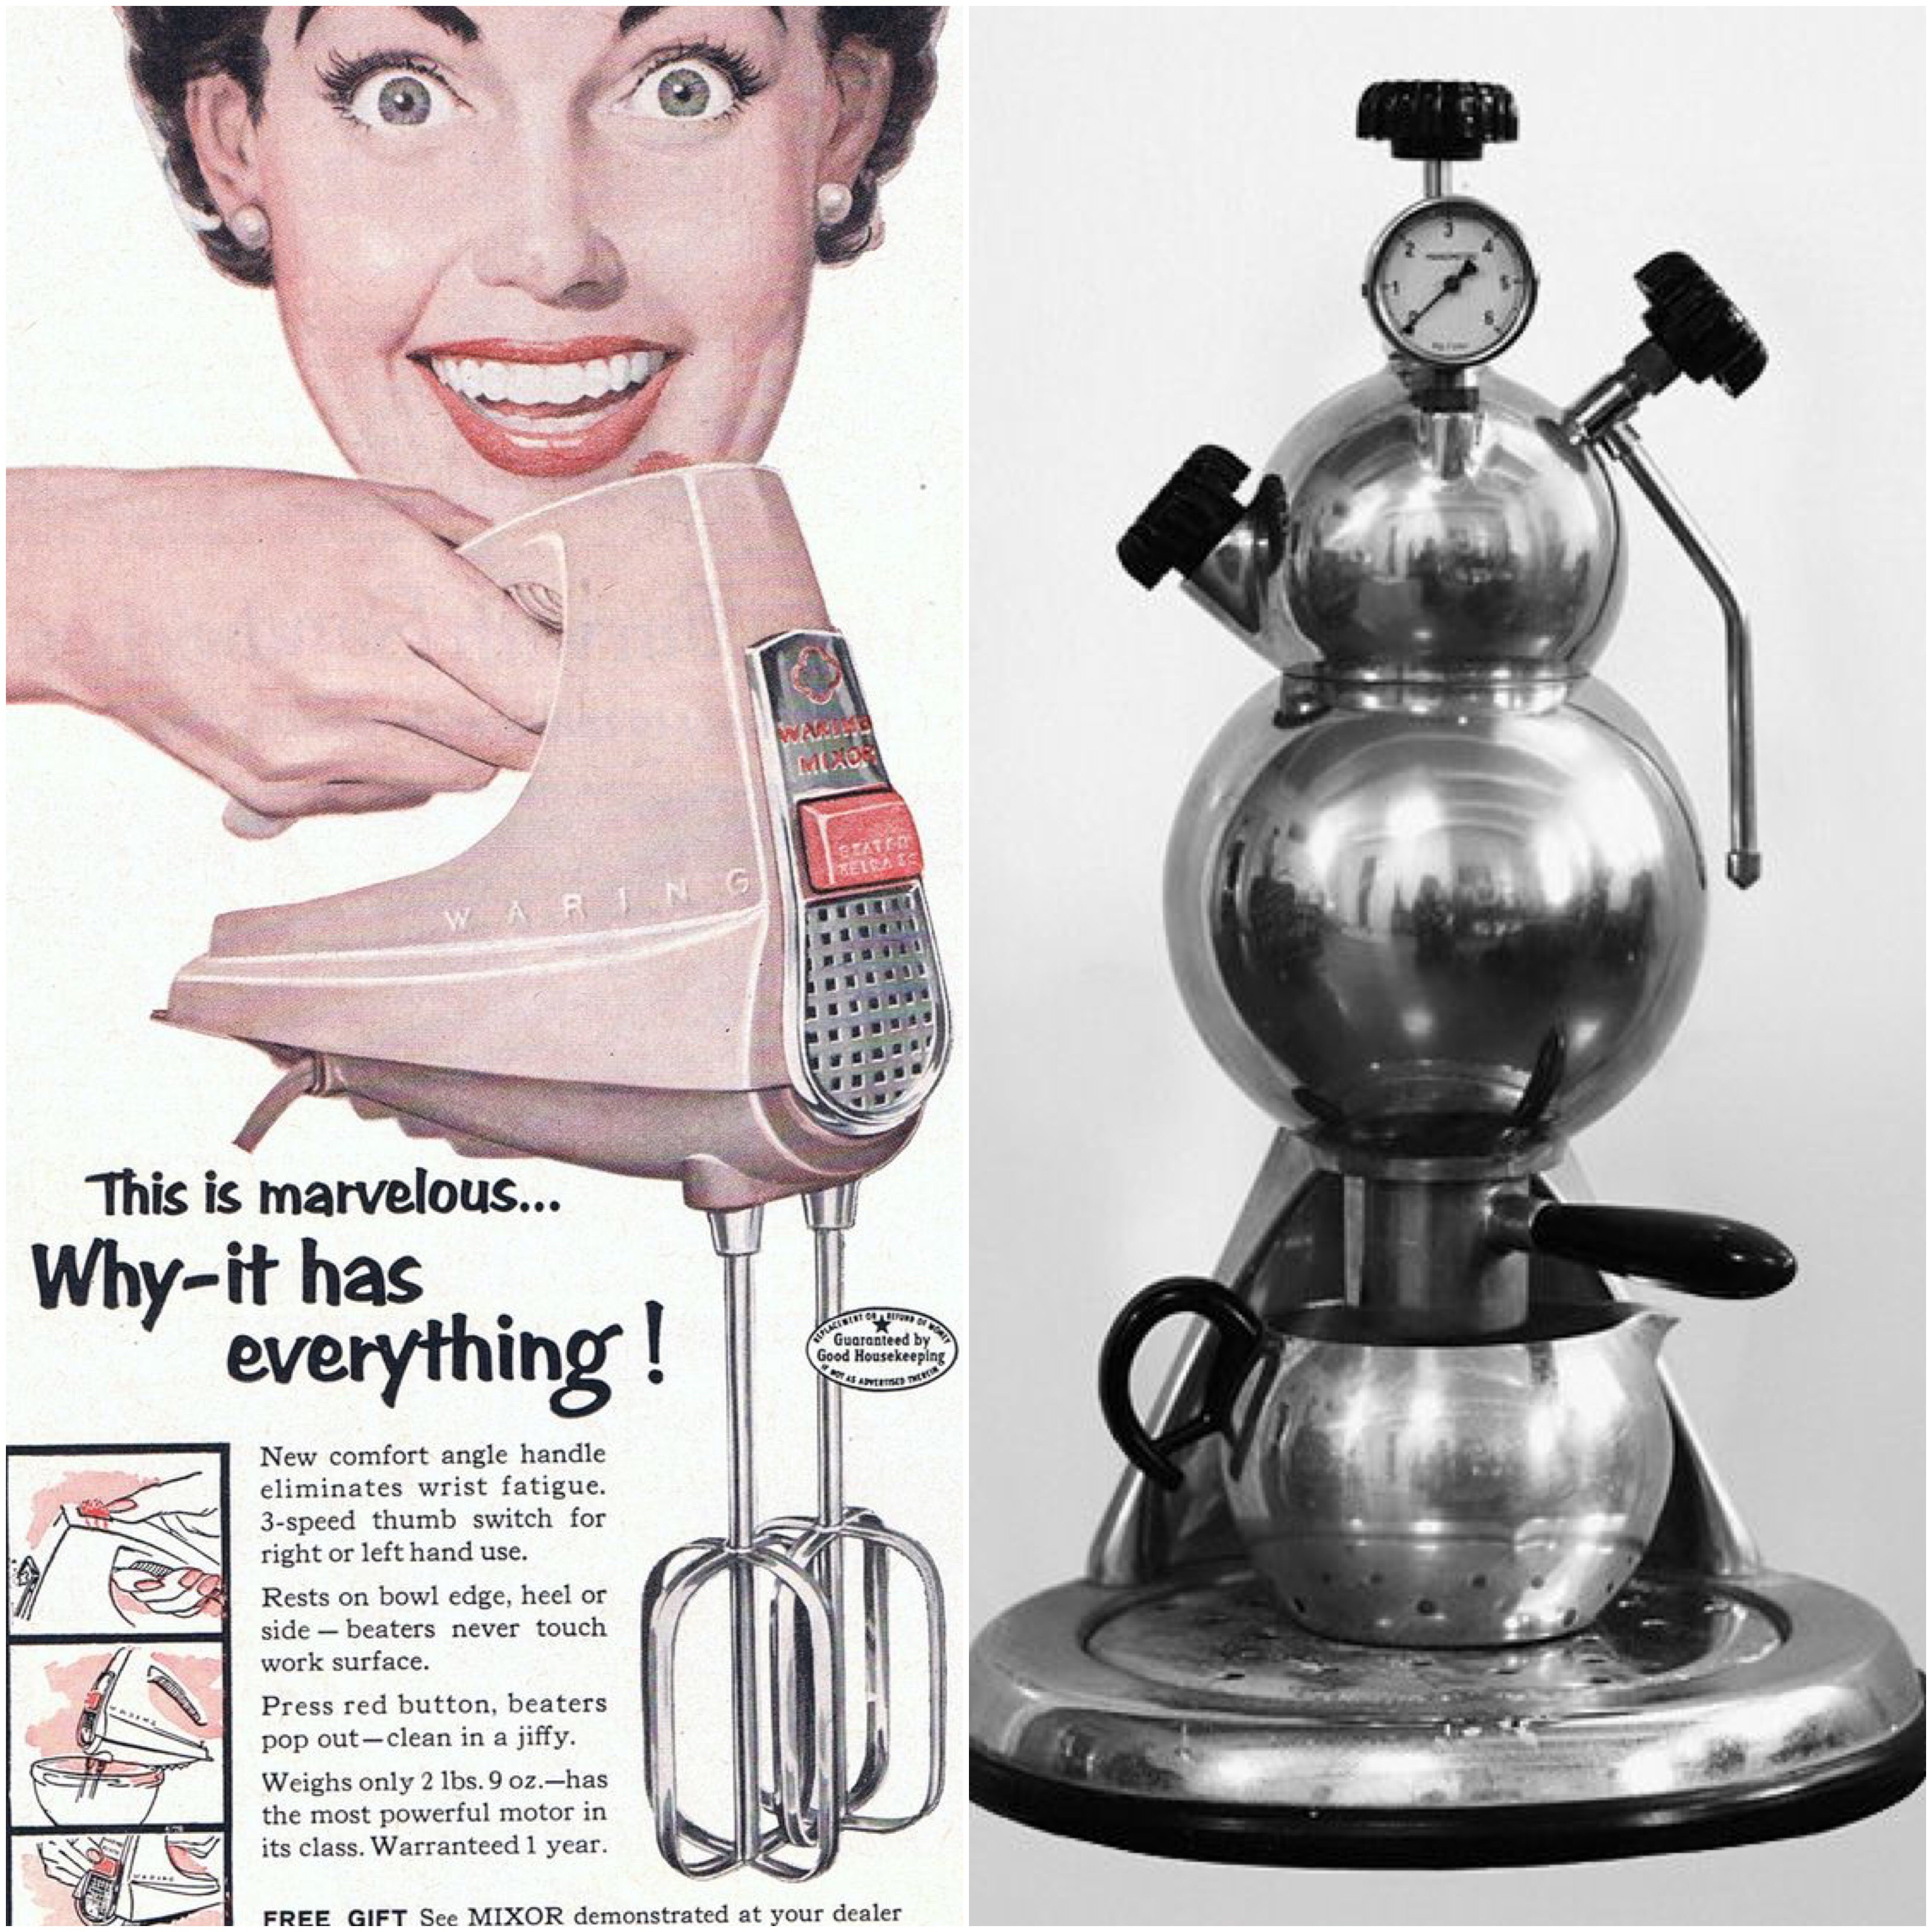 Technology Of The 1950s Was Groundbreaking To Consumers Aimed At Creating More Enjoyable Leisure Time By Minimizing Tasks Like Housework And Kitchen